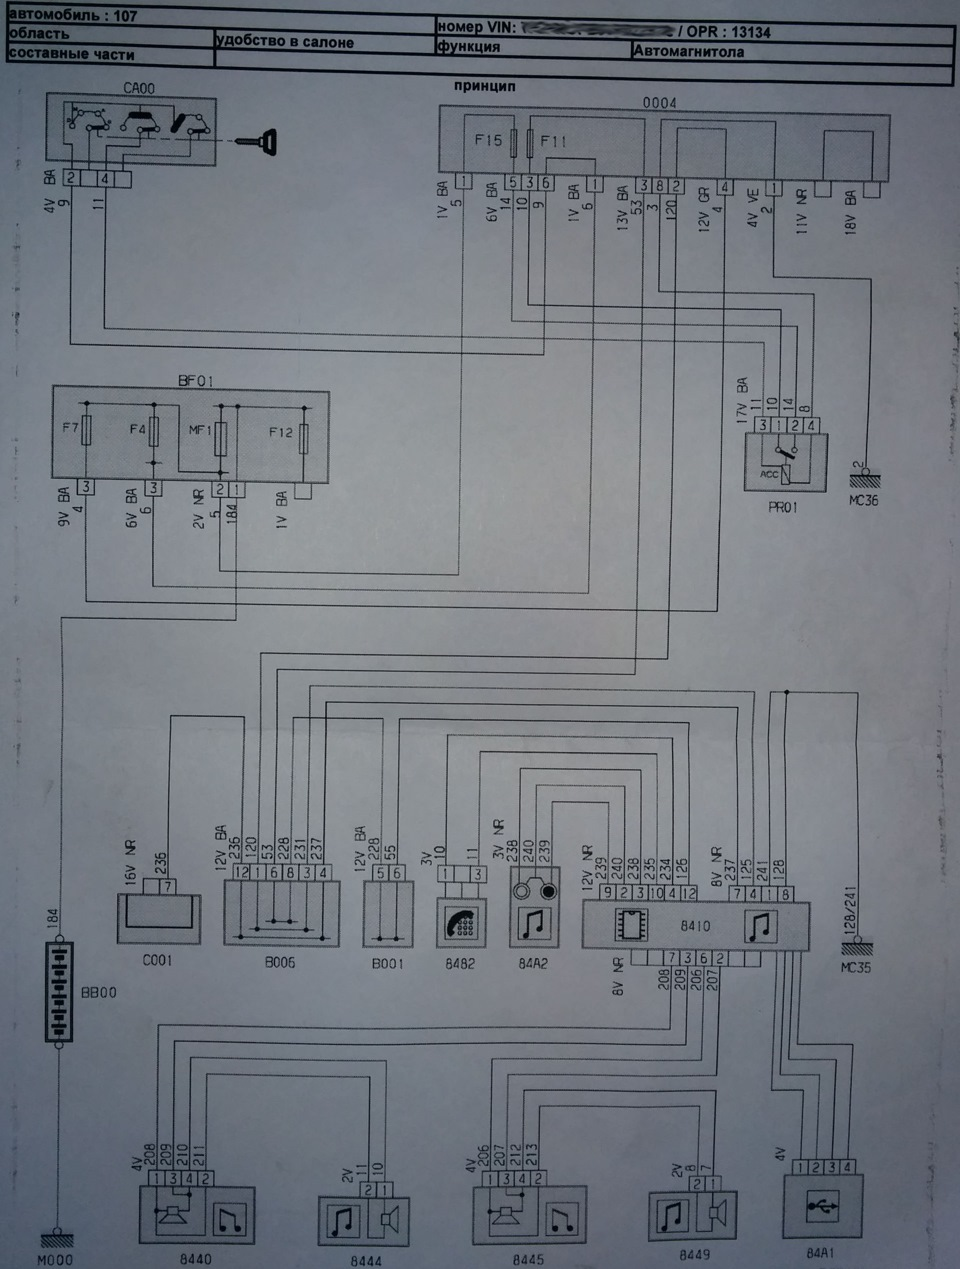 Peugeot 107 Wiring Diagram - Schema Diagram Data on pinout diagrams, friendship bracelet diagrams, transformer diagrams, switch diagrams, lighting diagrams, electronic circuit diagrams, battery diagrams, internet of things diagrams, sincgars radio configurations diagrams, motor diagrams, hvac diagrams, gmc fuse box diagrams, troubleshooting diagrams, electrical diagrams, led circuit diagrams, engine diagrams, series and parallel circuits diagrams, smart car diagrams, honda motorcycle repair diagrams,